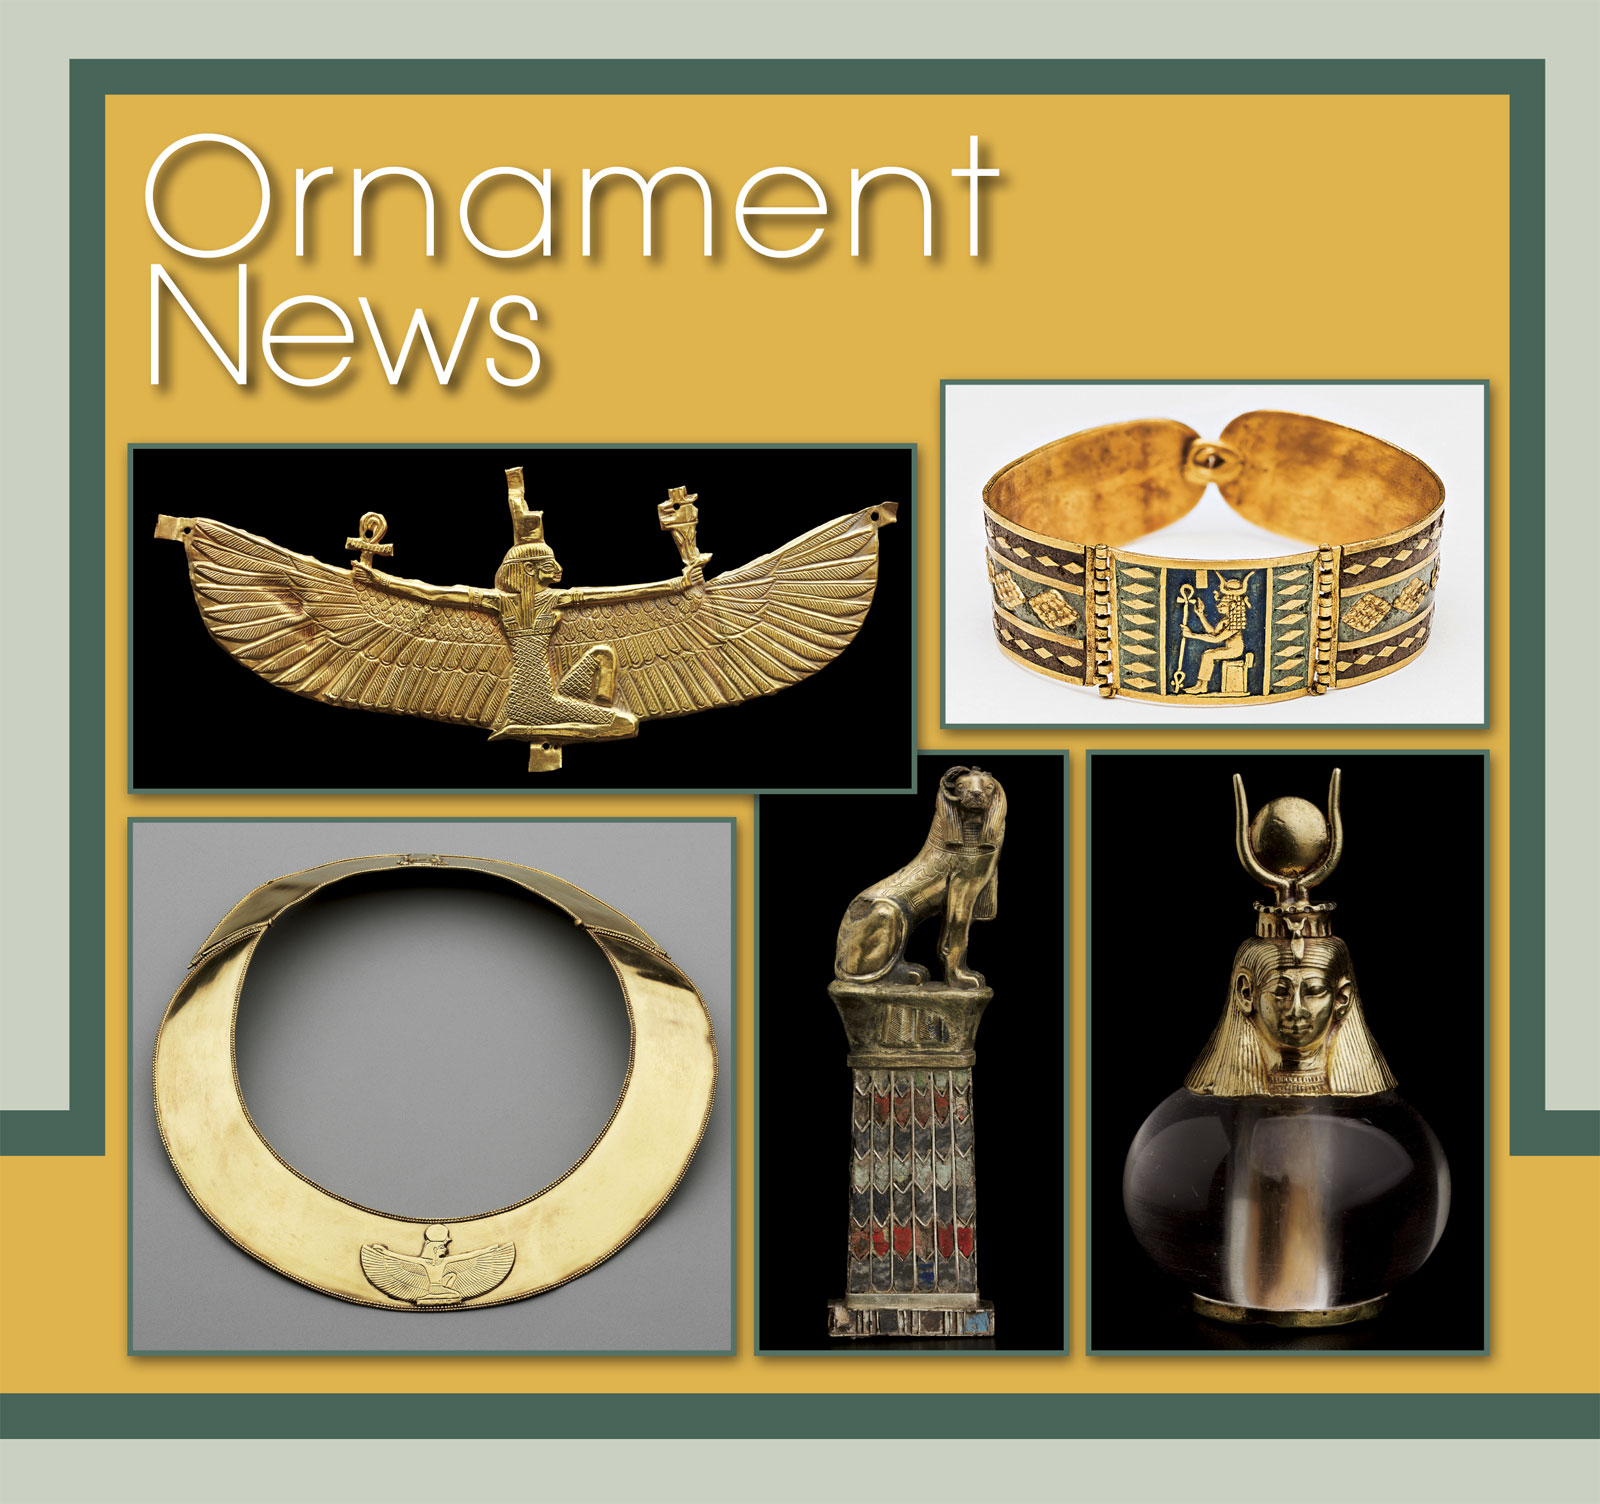 THE MUSEUM OF FINE ARTS, BOSTON:  Shown from left to right, top to bottom: Winged Isis pendant of gold; gold bracelet with image of Hathor; forged gold collar with Isis; pendant with ram-headed sphinx; Hathor-headed crystal pendant.  Photographs courtesy of the Museum of Fine Arts, Boston.